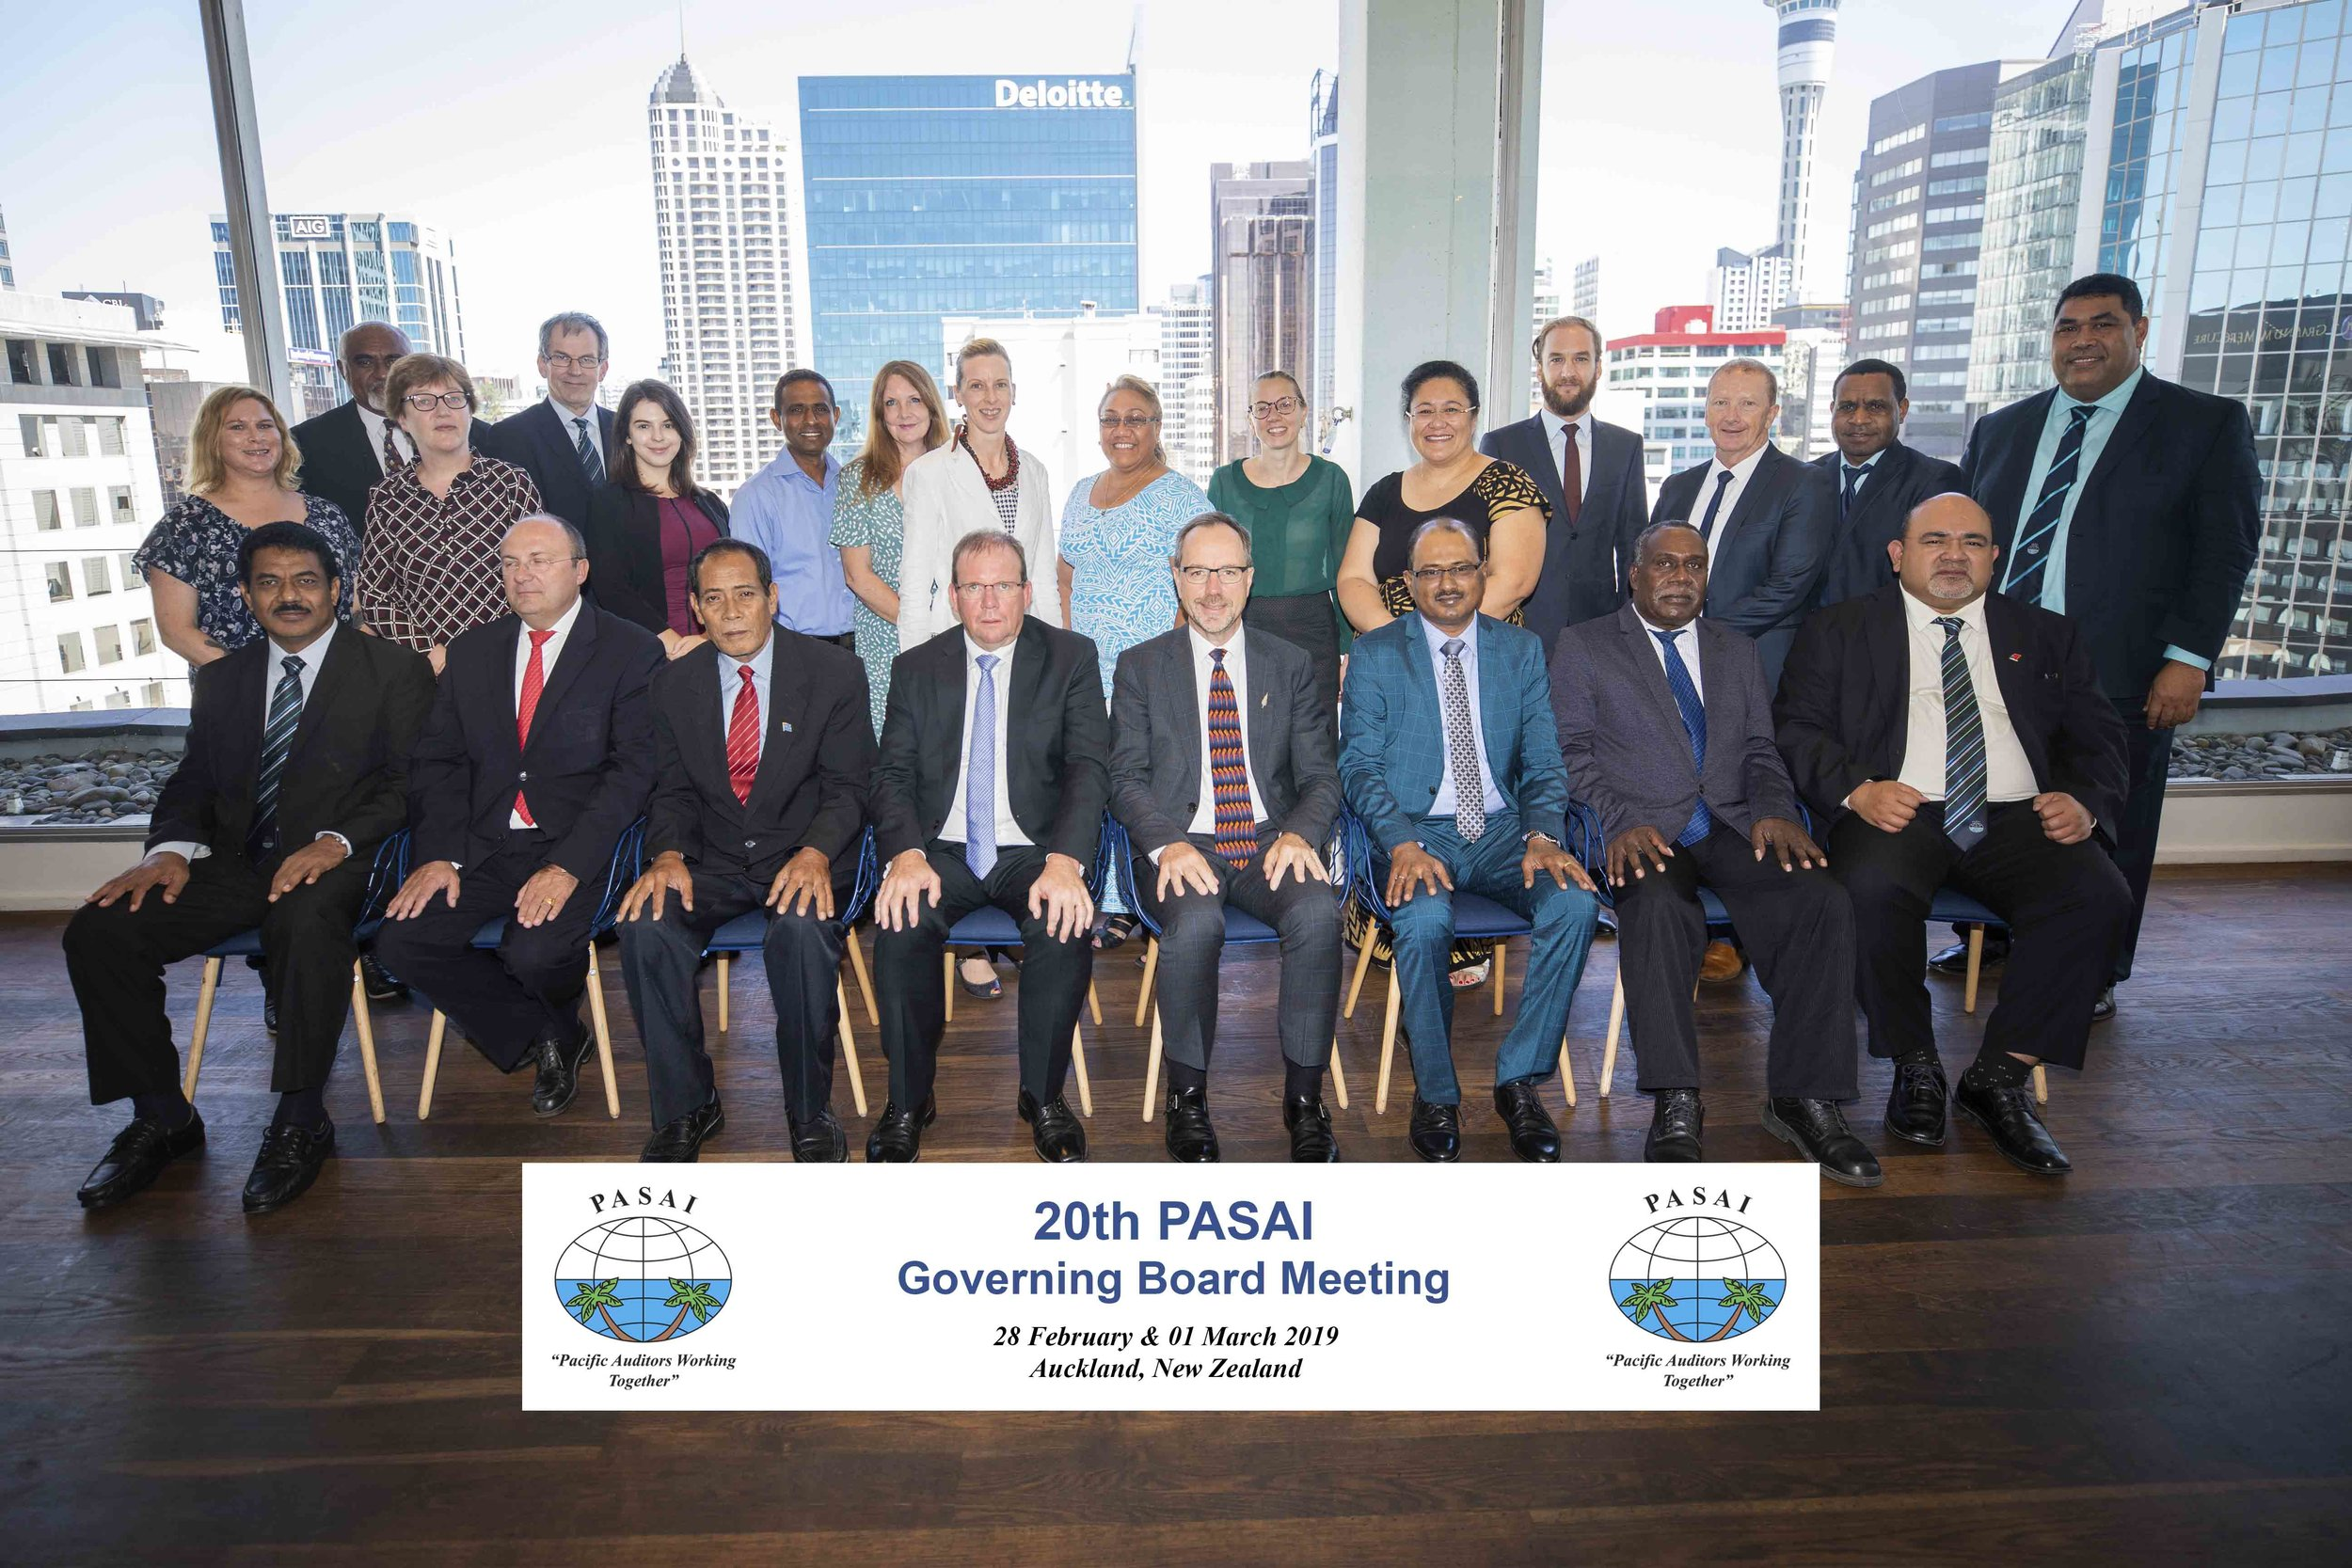 20th PASAI Governing Board Meeting, Auckland Feb 2019.jpg